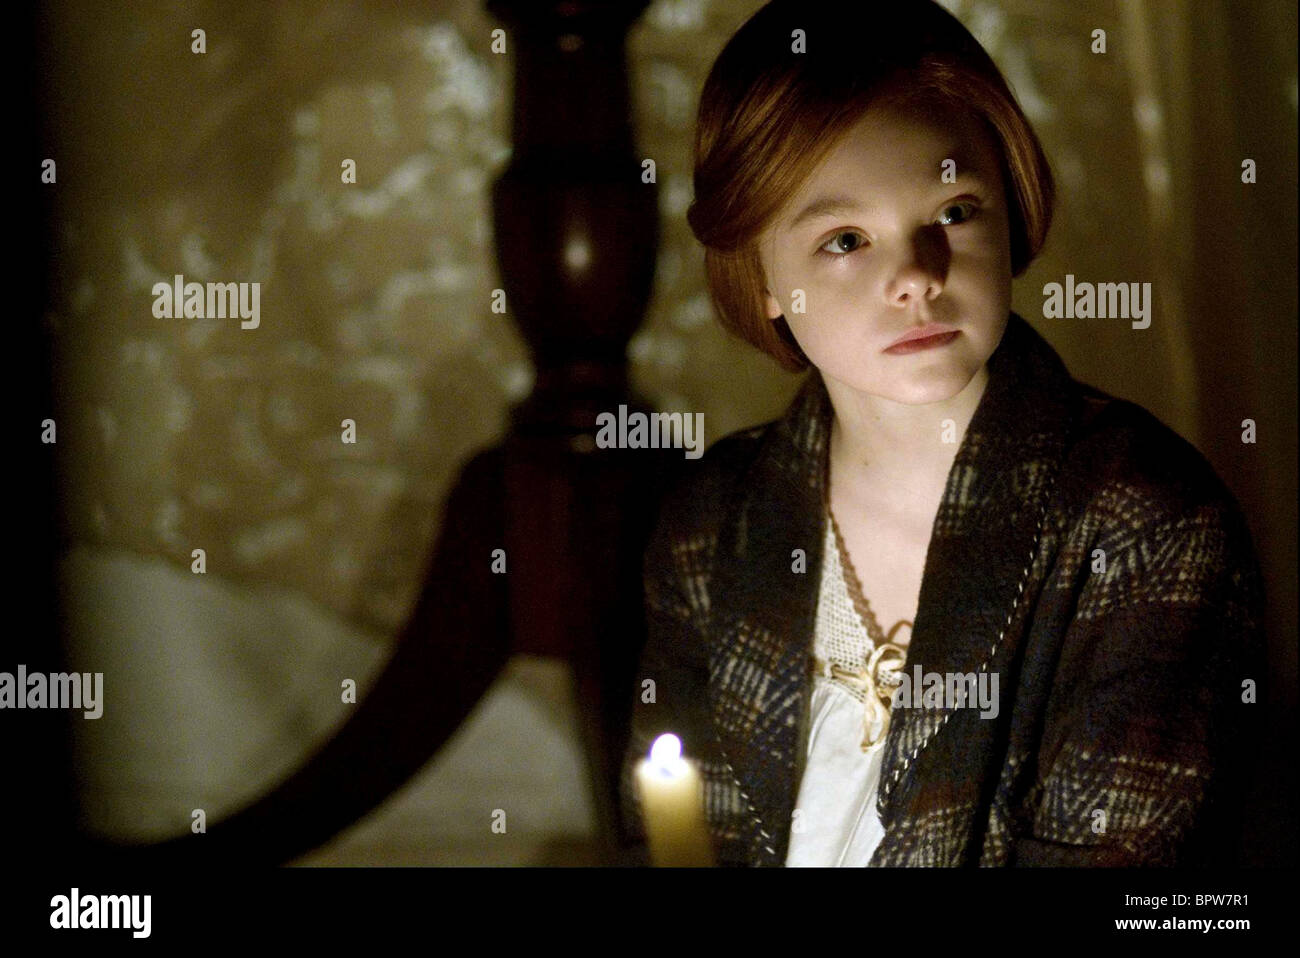 Elle Fanning The Curious Case Of Benjamin Button 2008 Stock Photo Alamy